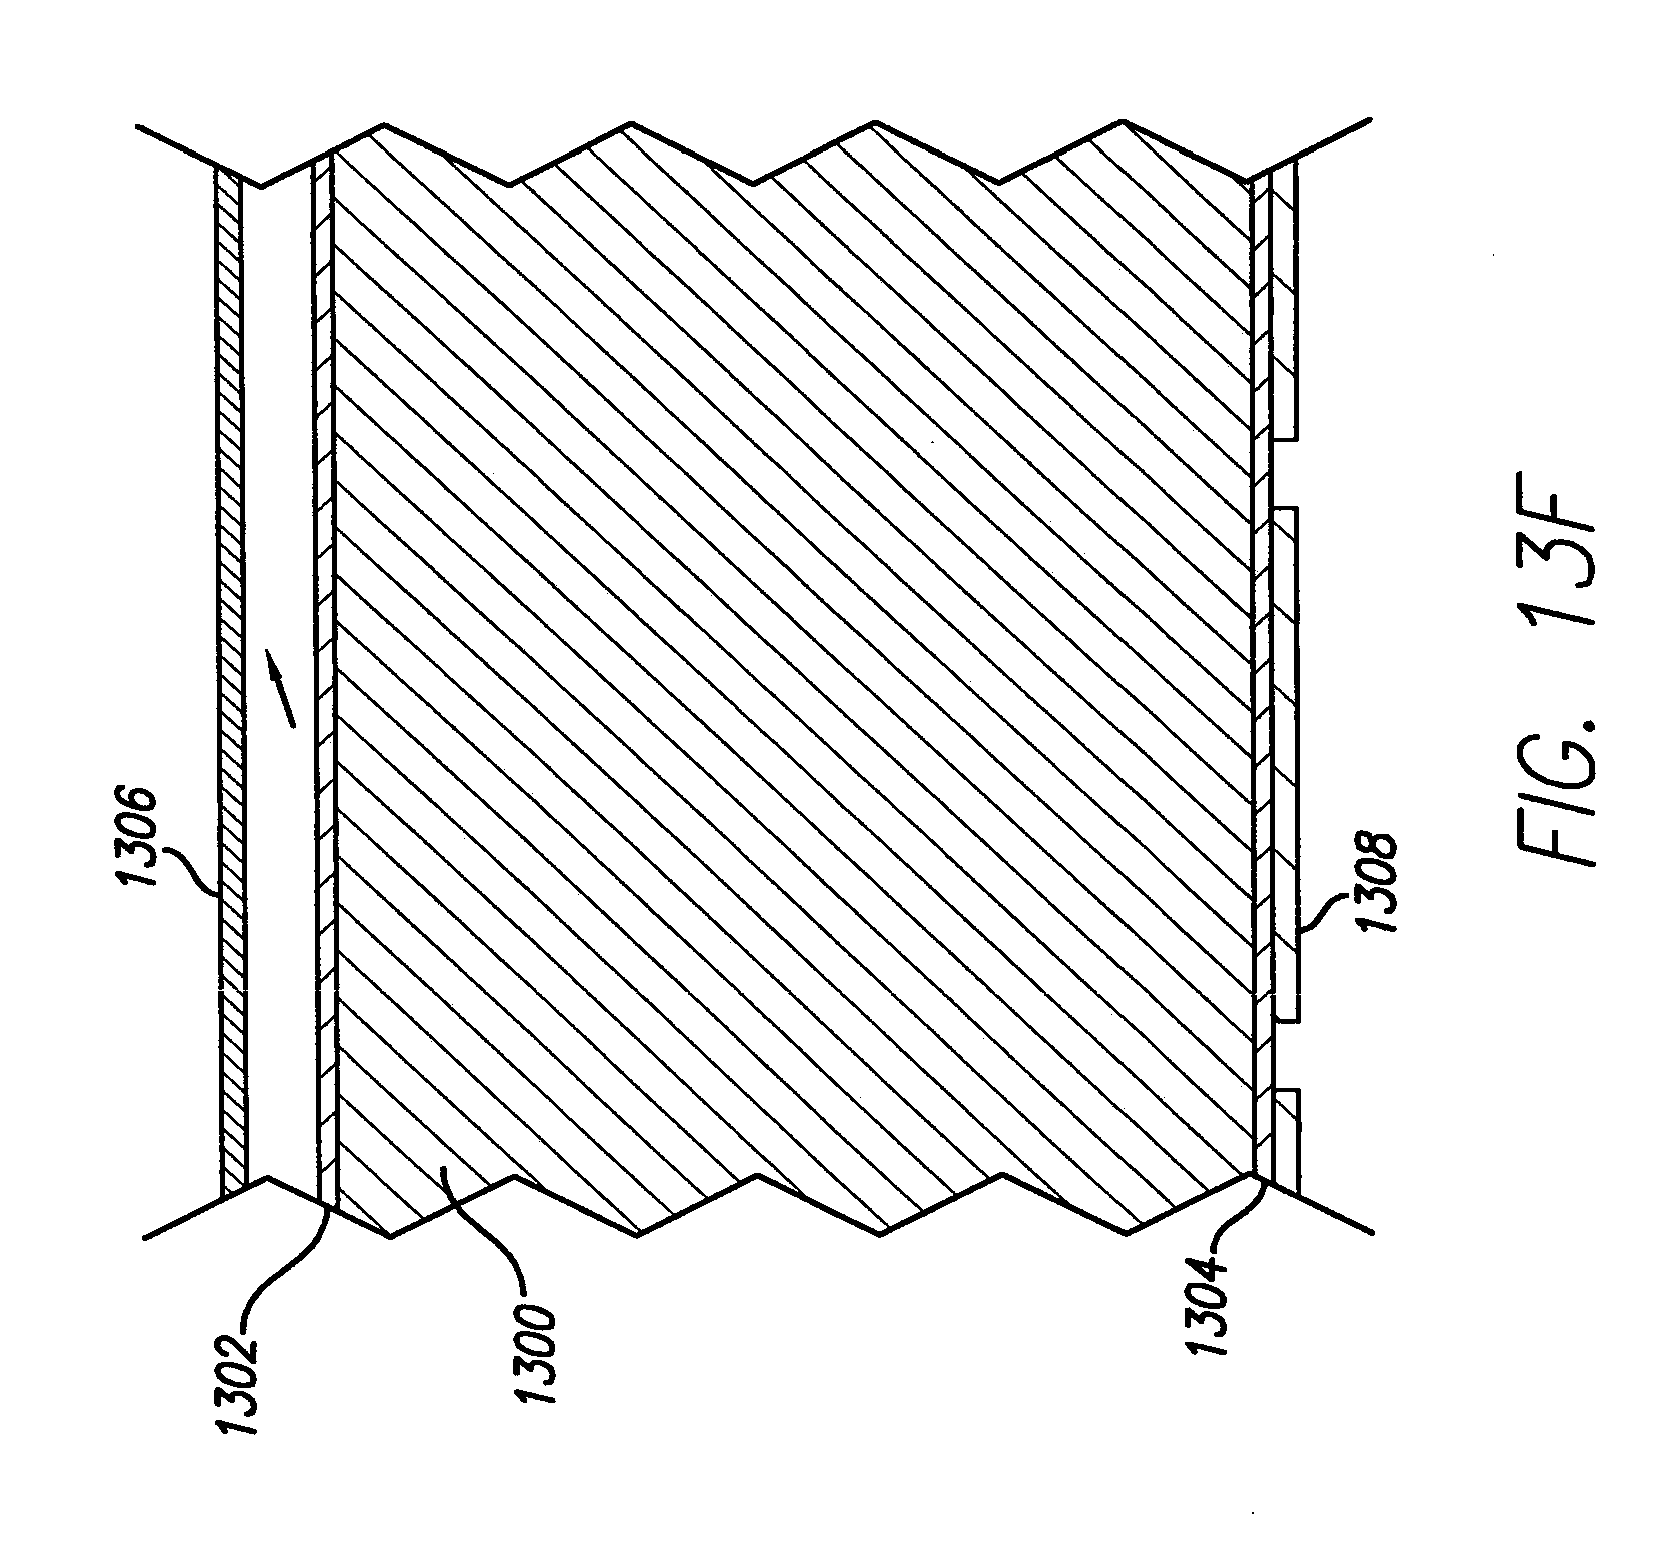 patent us20120004012 - double-sided touch sensitive panel and flex circuit bonding